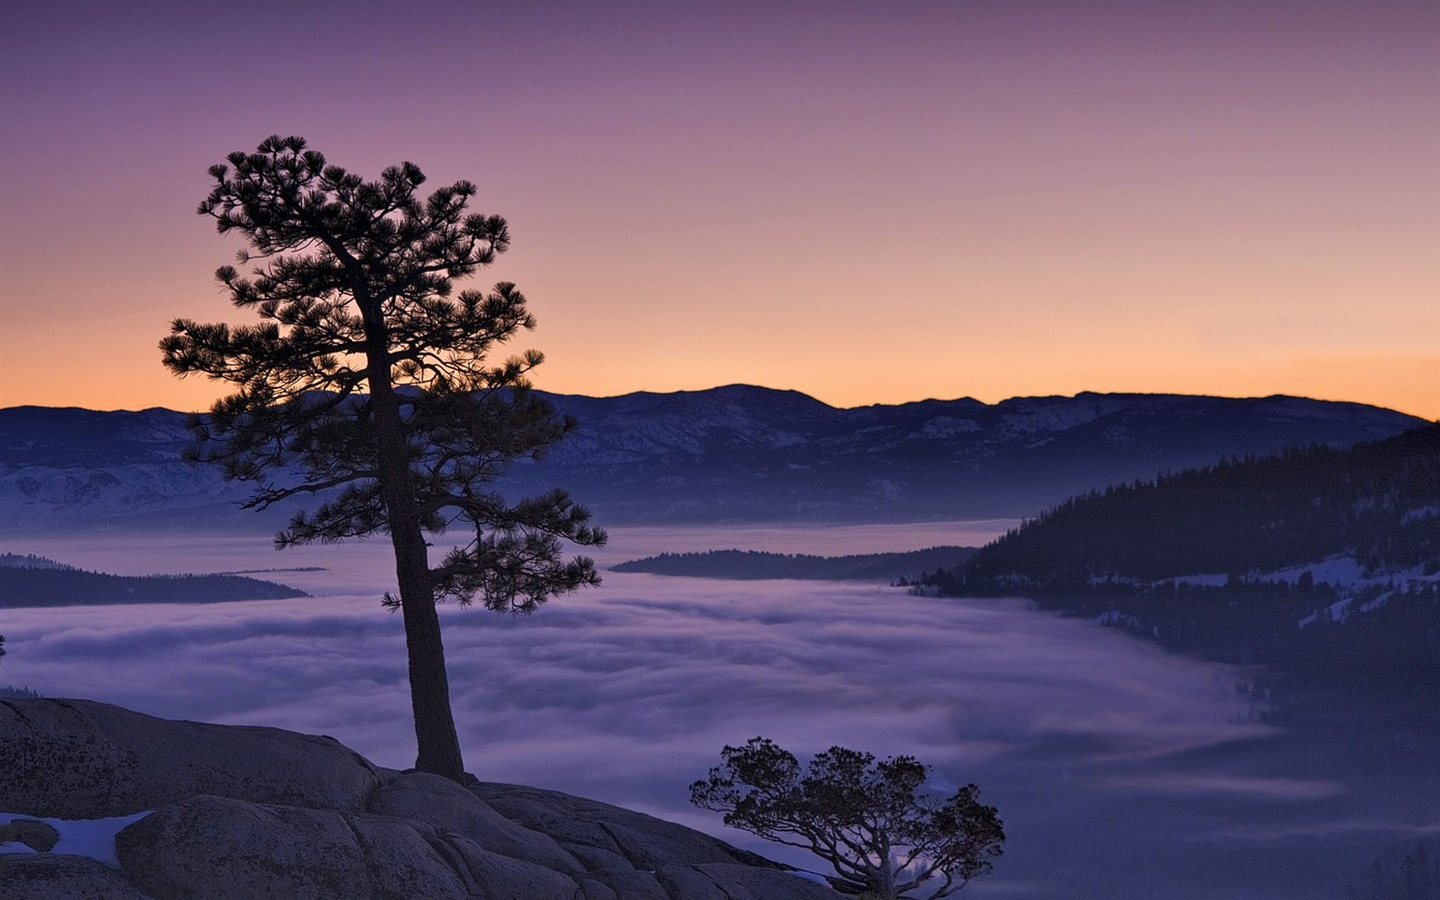 Tree, fog, mountains, dawn 1440x900 wallpaper